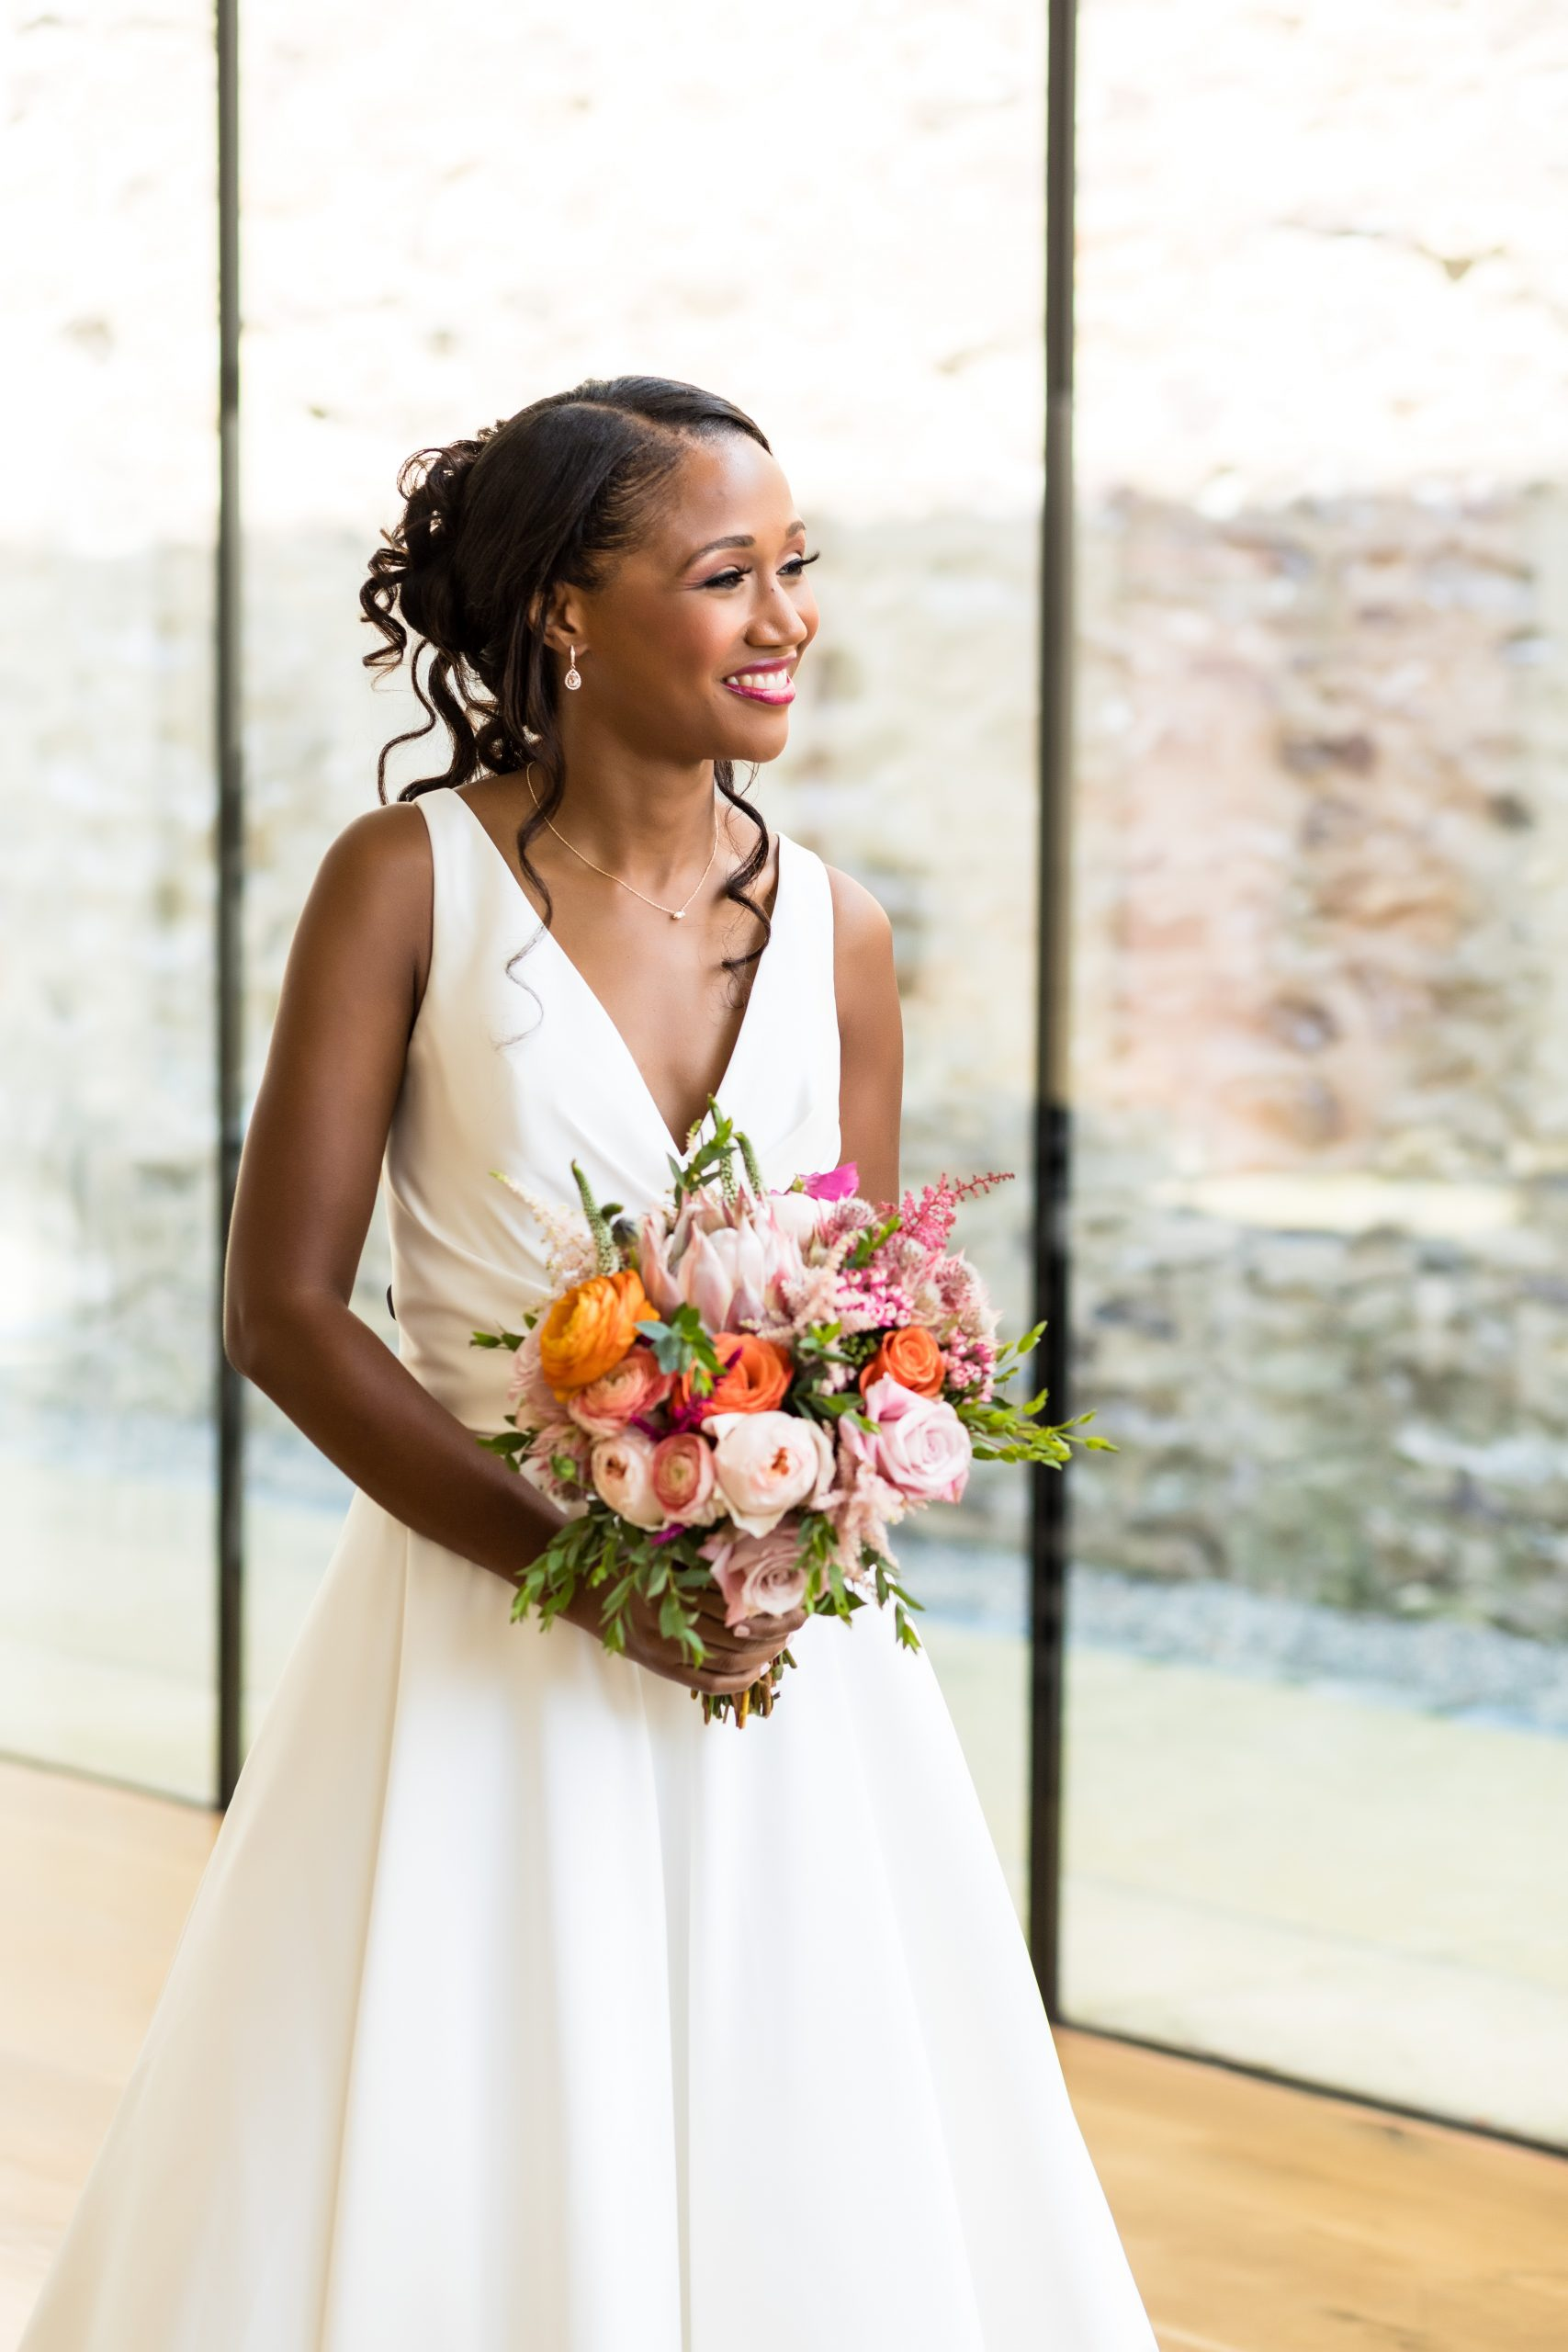 The bride happily looks on through the floor to ceiling windows at the Michener Museum styled urban contemporary shoot for Ashley Gerrity Photography this past Summer. Featured on Dream Weddings.